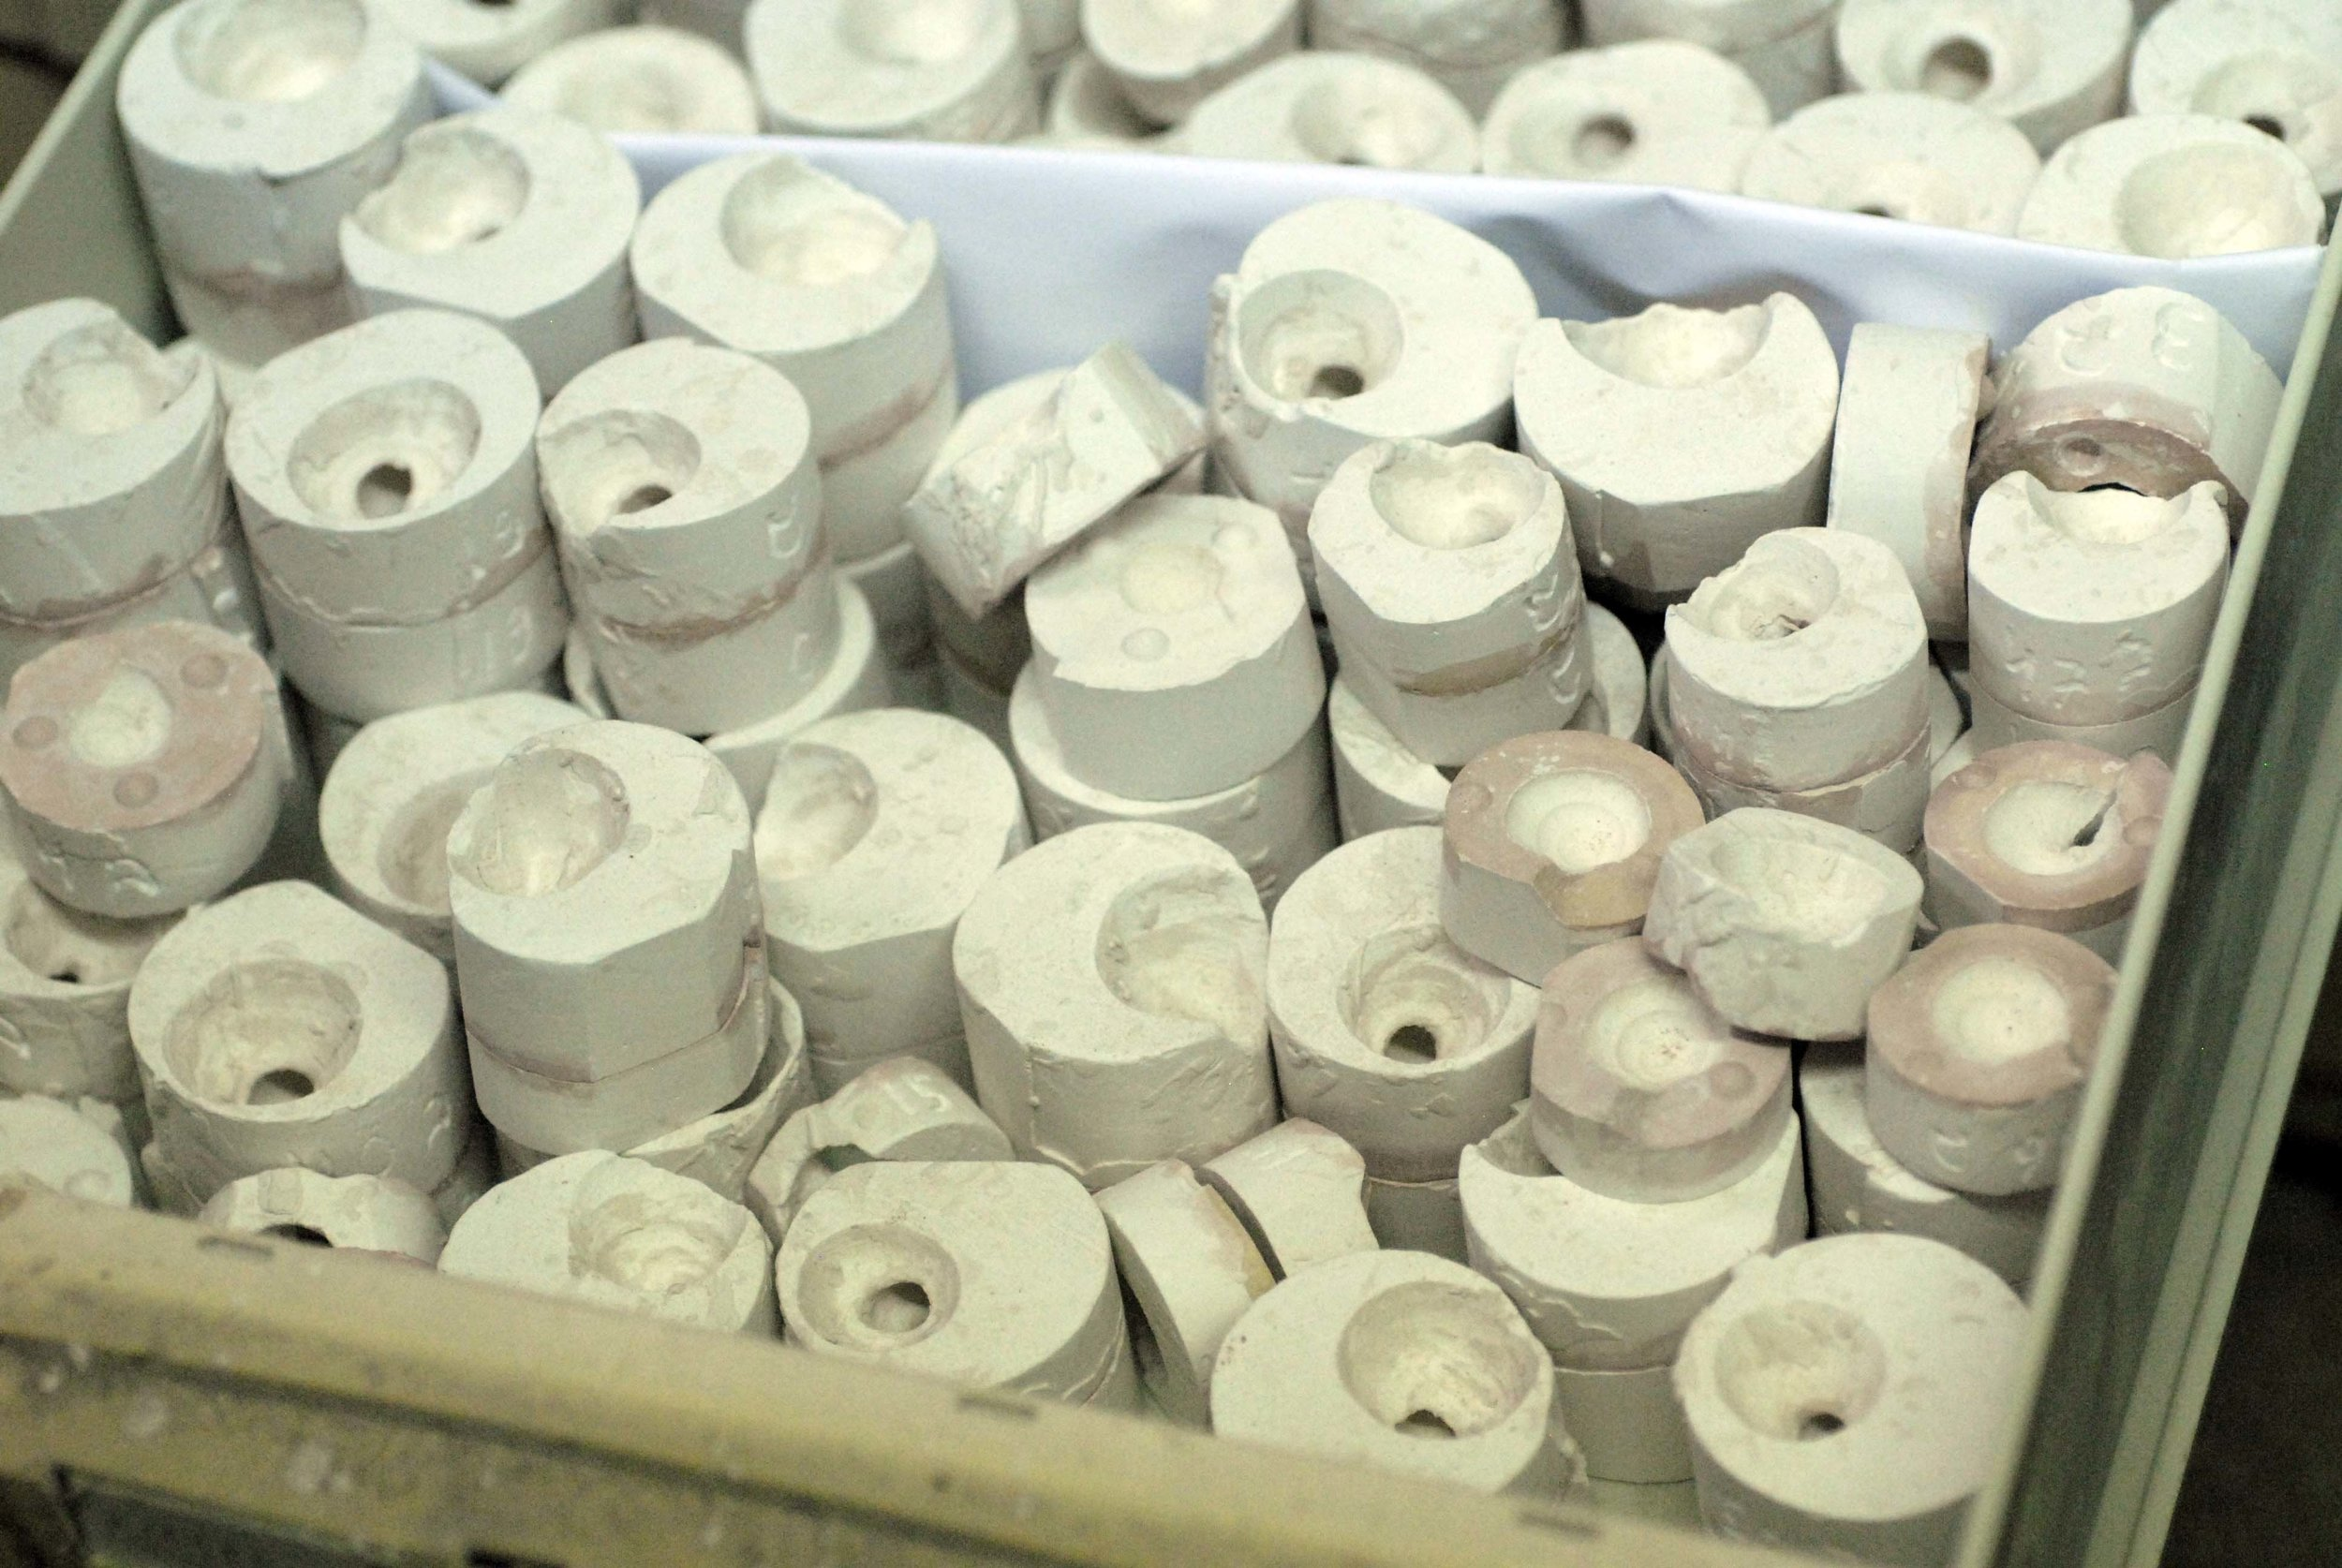 One of several drawers filled with plaster molds for Fenichel's porcelain snails. Photo: Katia Rabey